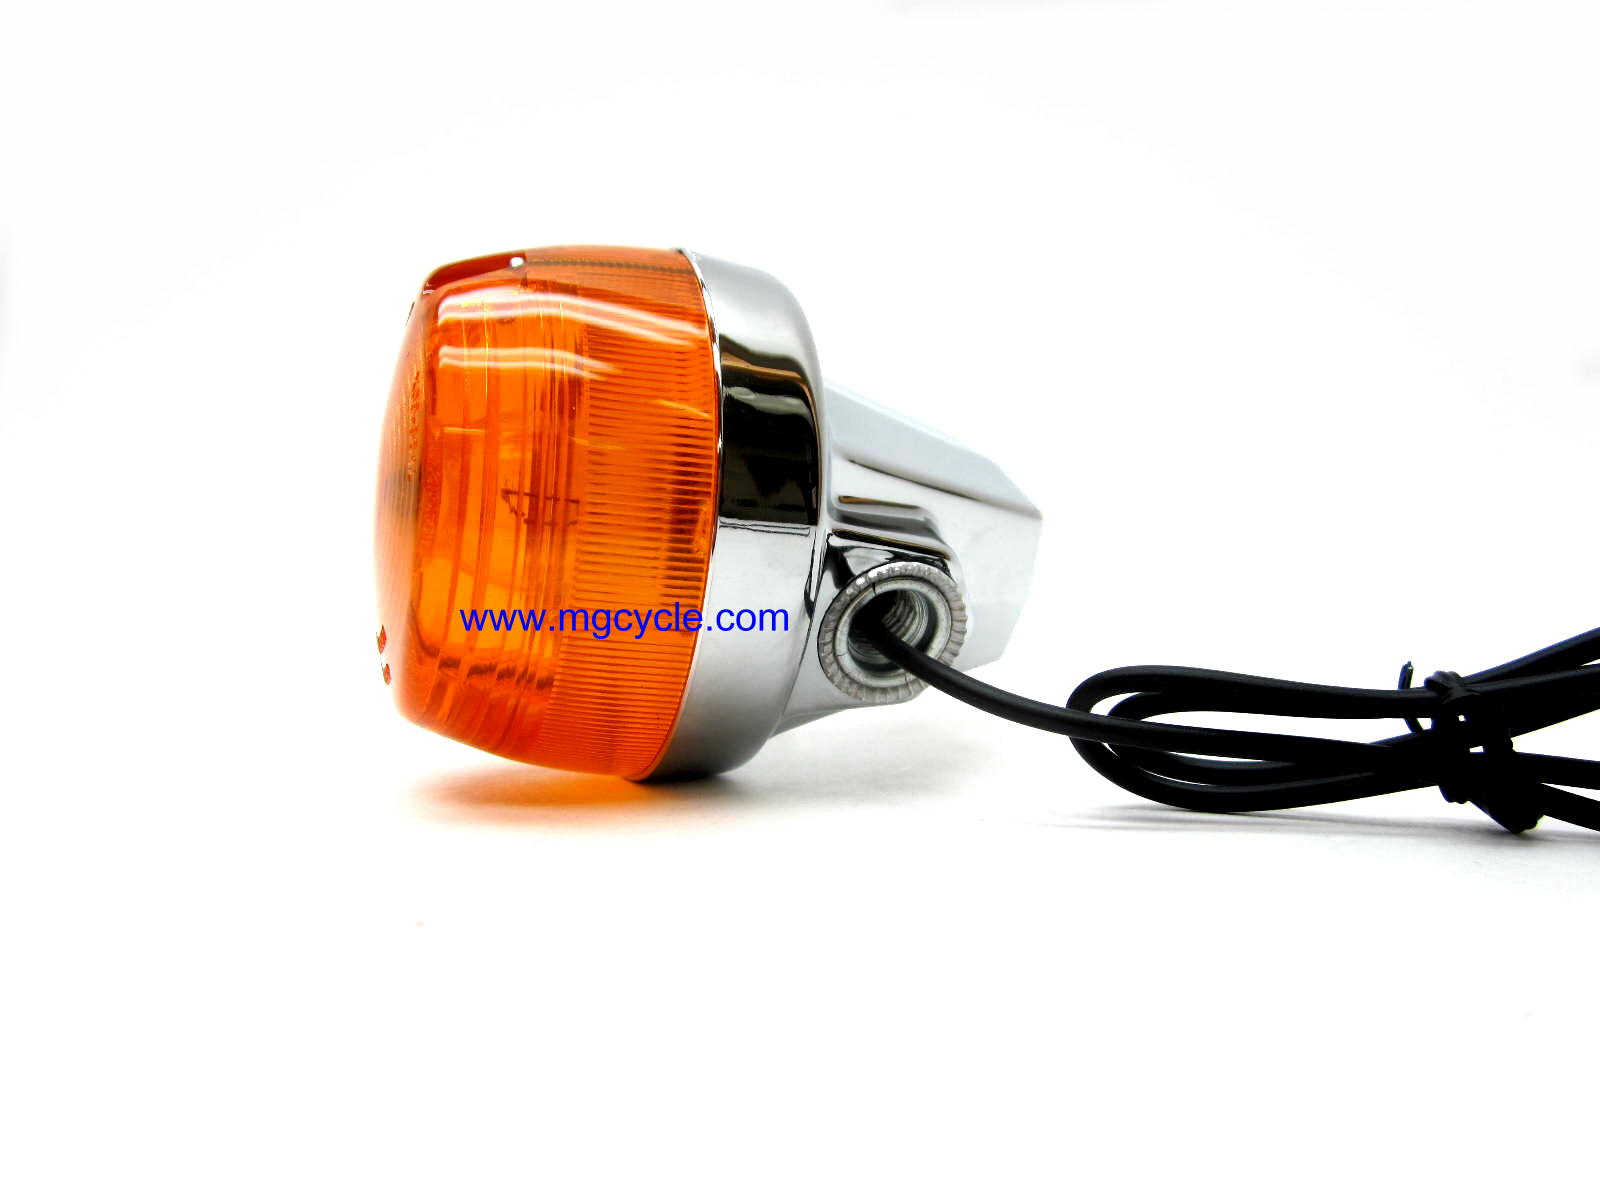 Genuine CEV turn signal 079903484 079903584 Ducati 860/900 GTS